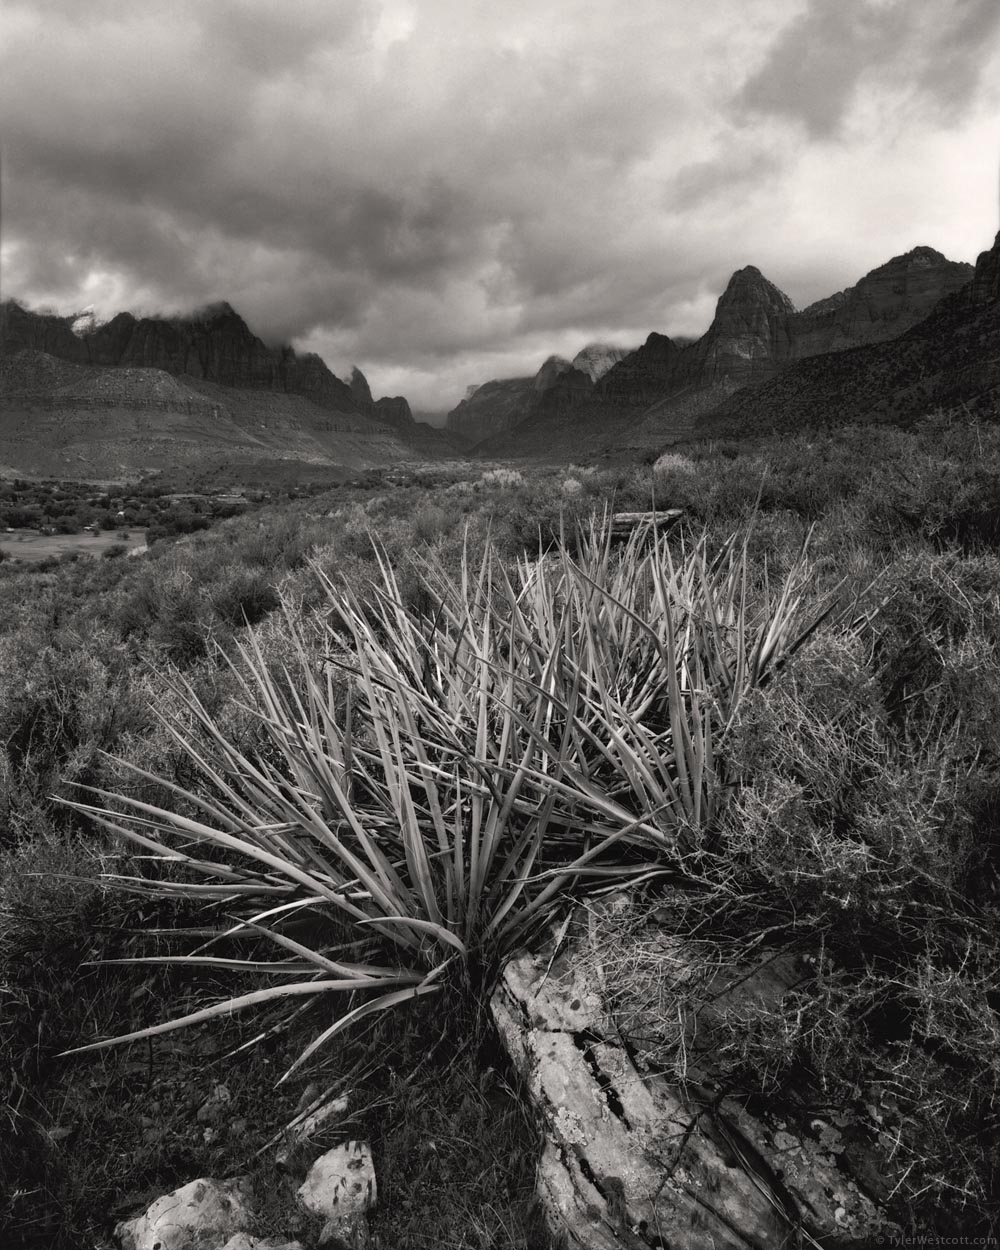 Yucca and Zion Canyon, Zion National Park